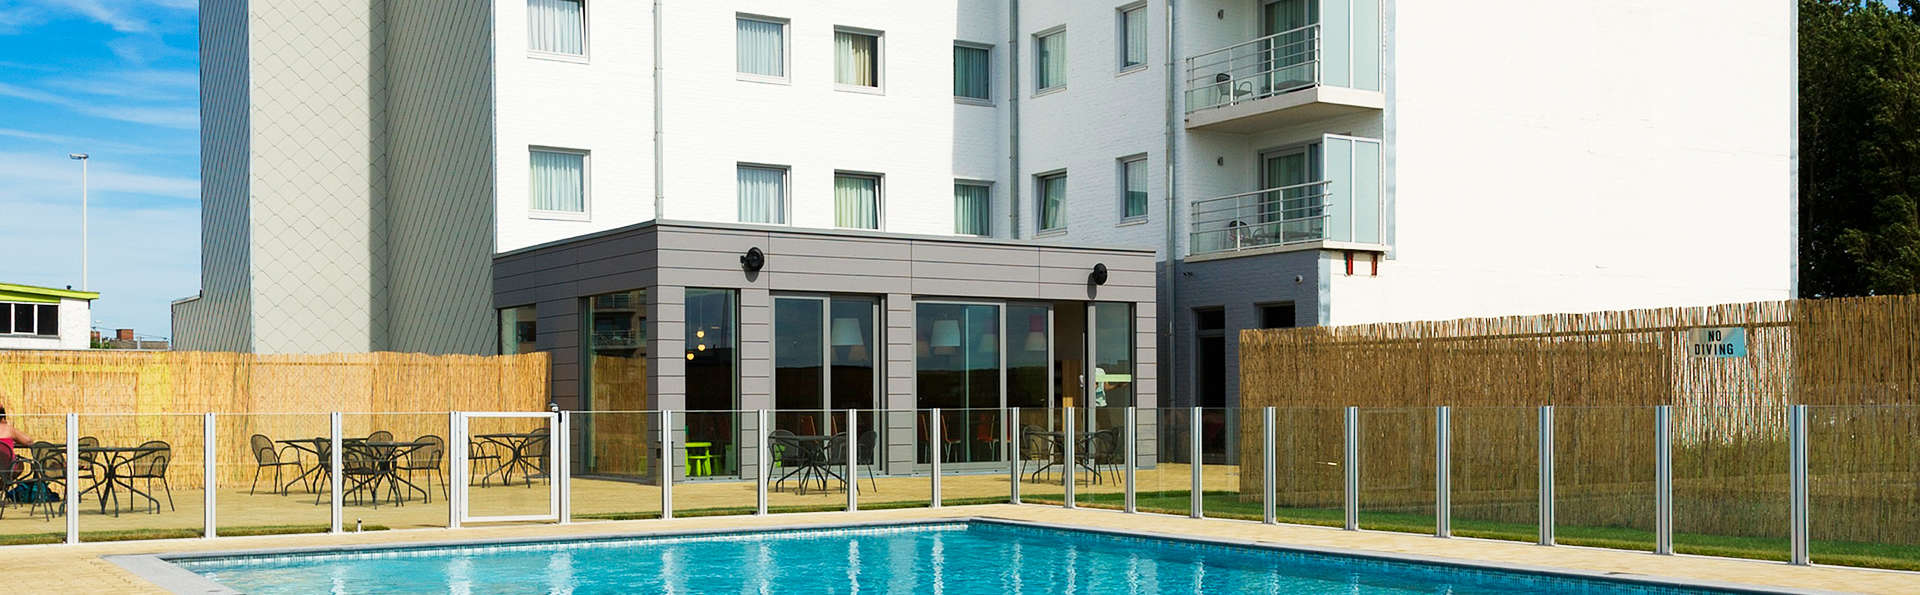 Ibis Styles Zeebrugge - edit_pool.jpg